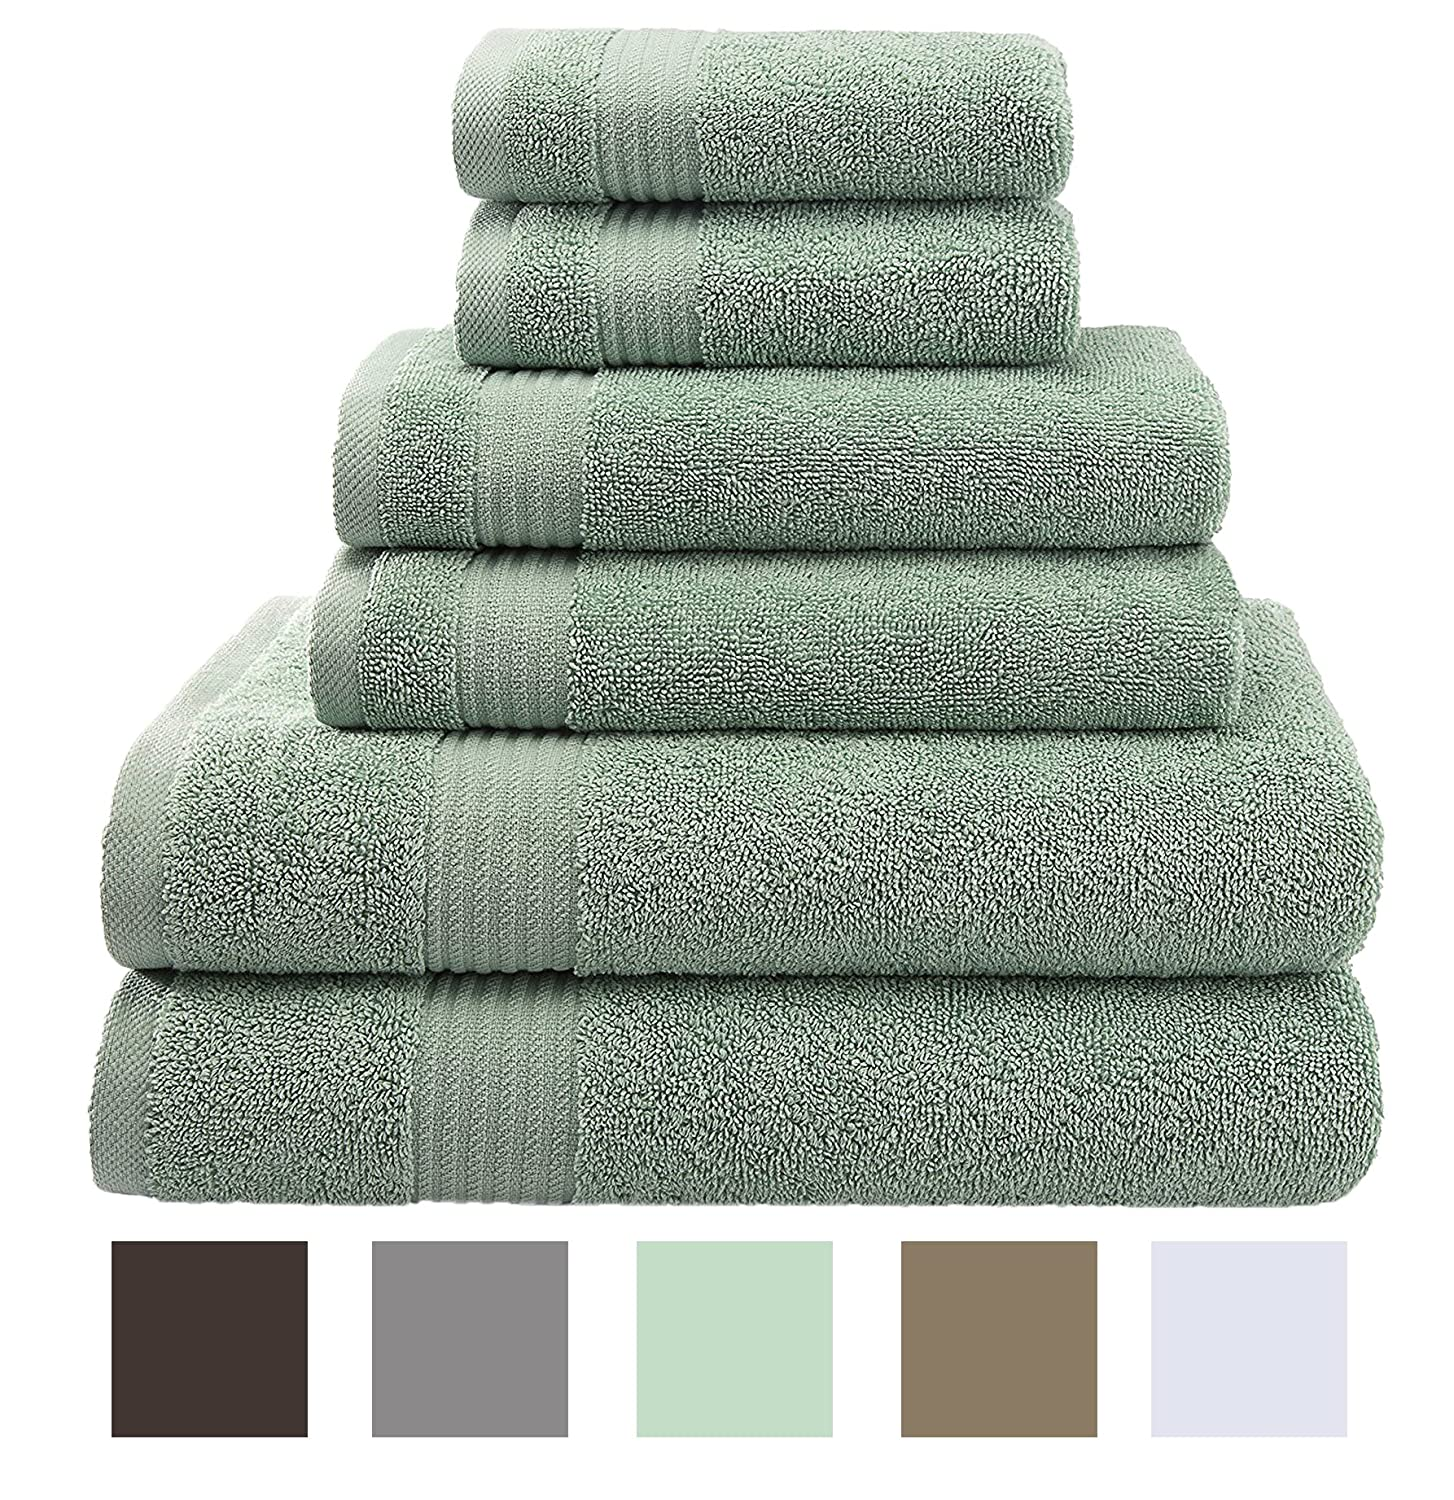 Premium, Luxury Hotel & Spa, Turkish Towels 100% Cotton 6-Piece Towel Set Mint Green